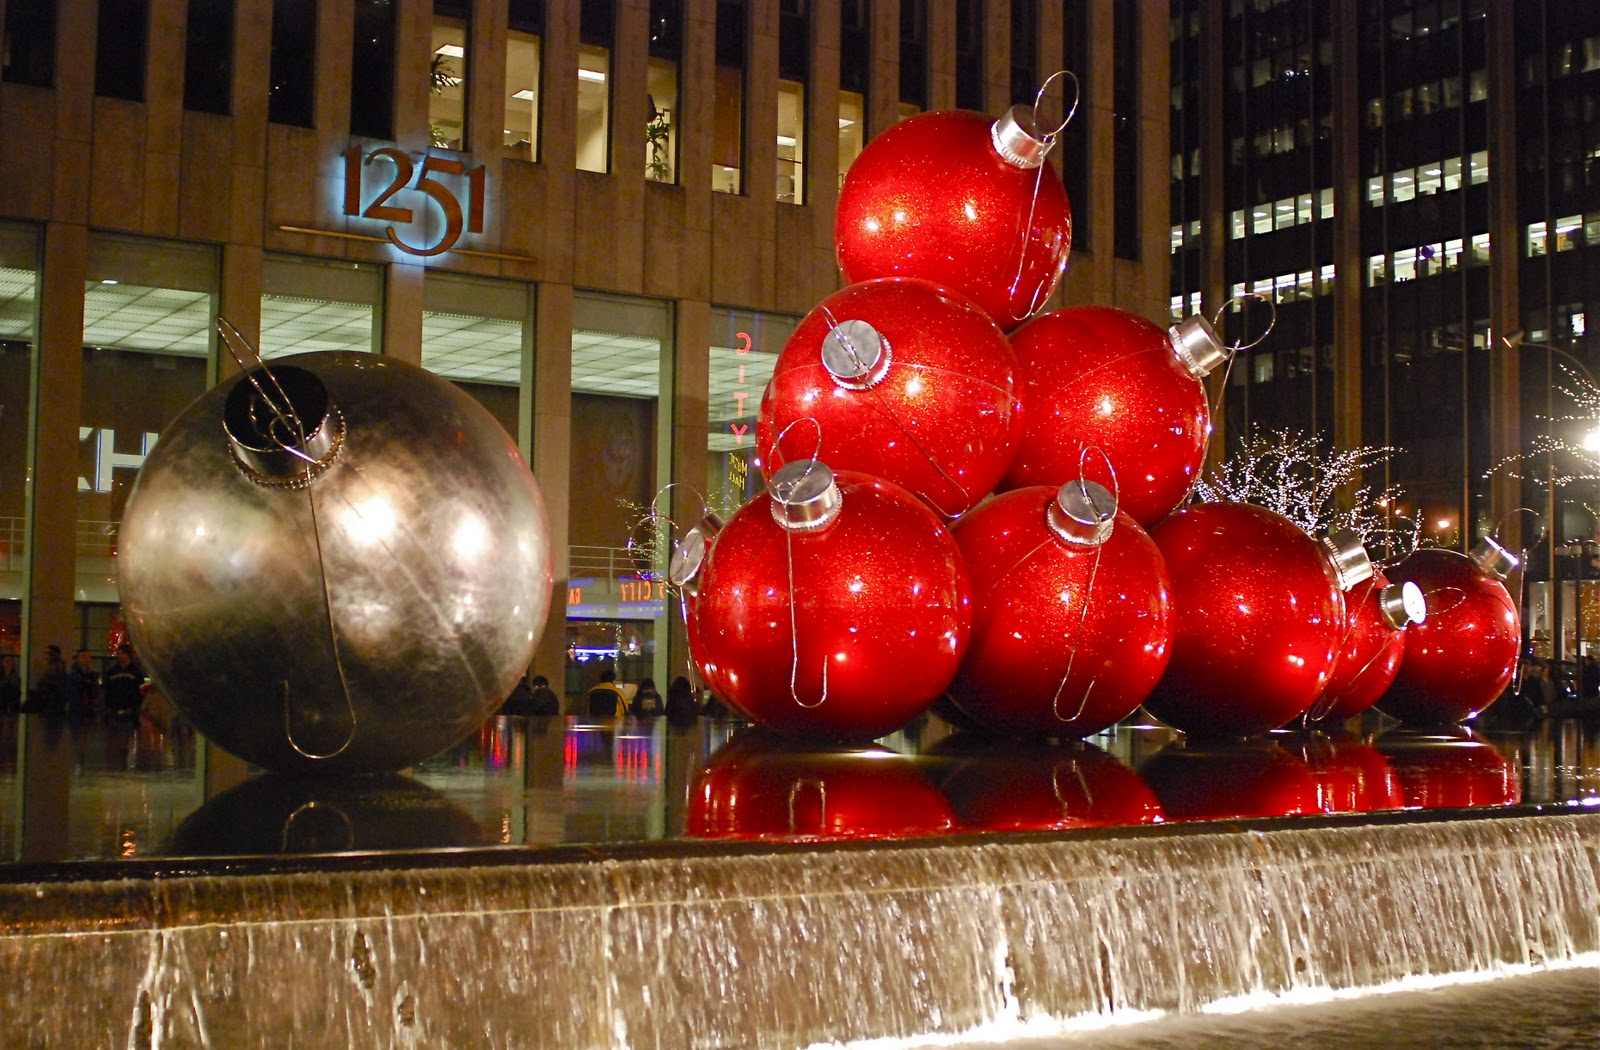 giant christmas ornaments at 1251 sixth avenue - Large Christmas Decorations